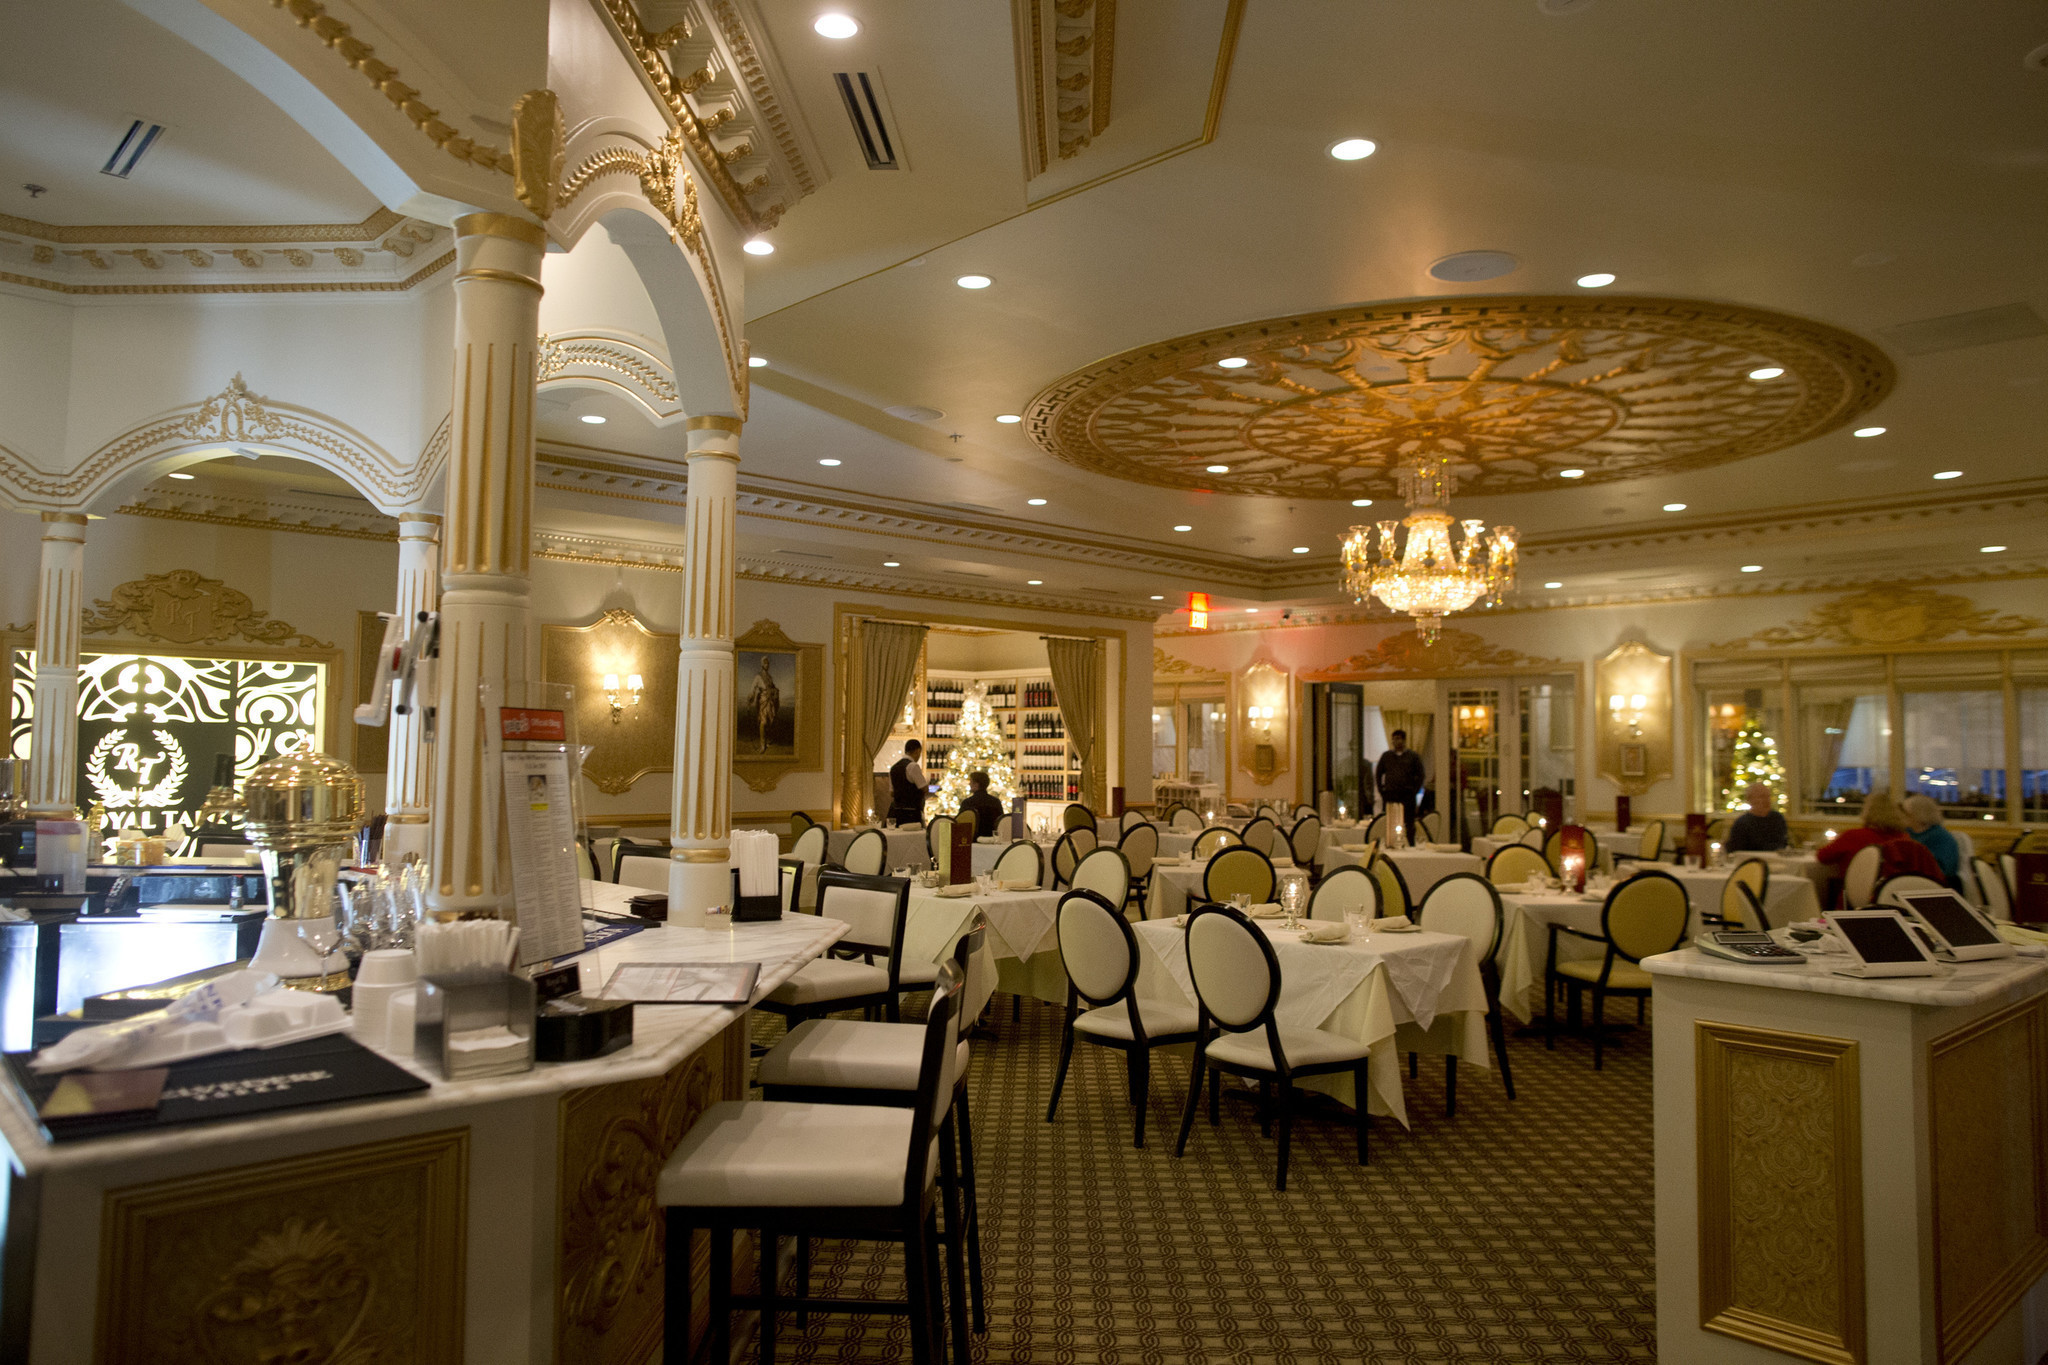 Royal Taj S Excellent Fare Shines In A Beautiful Space